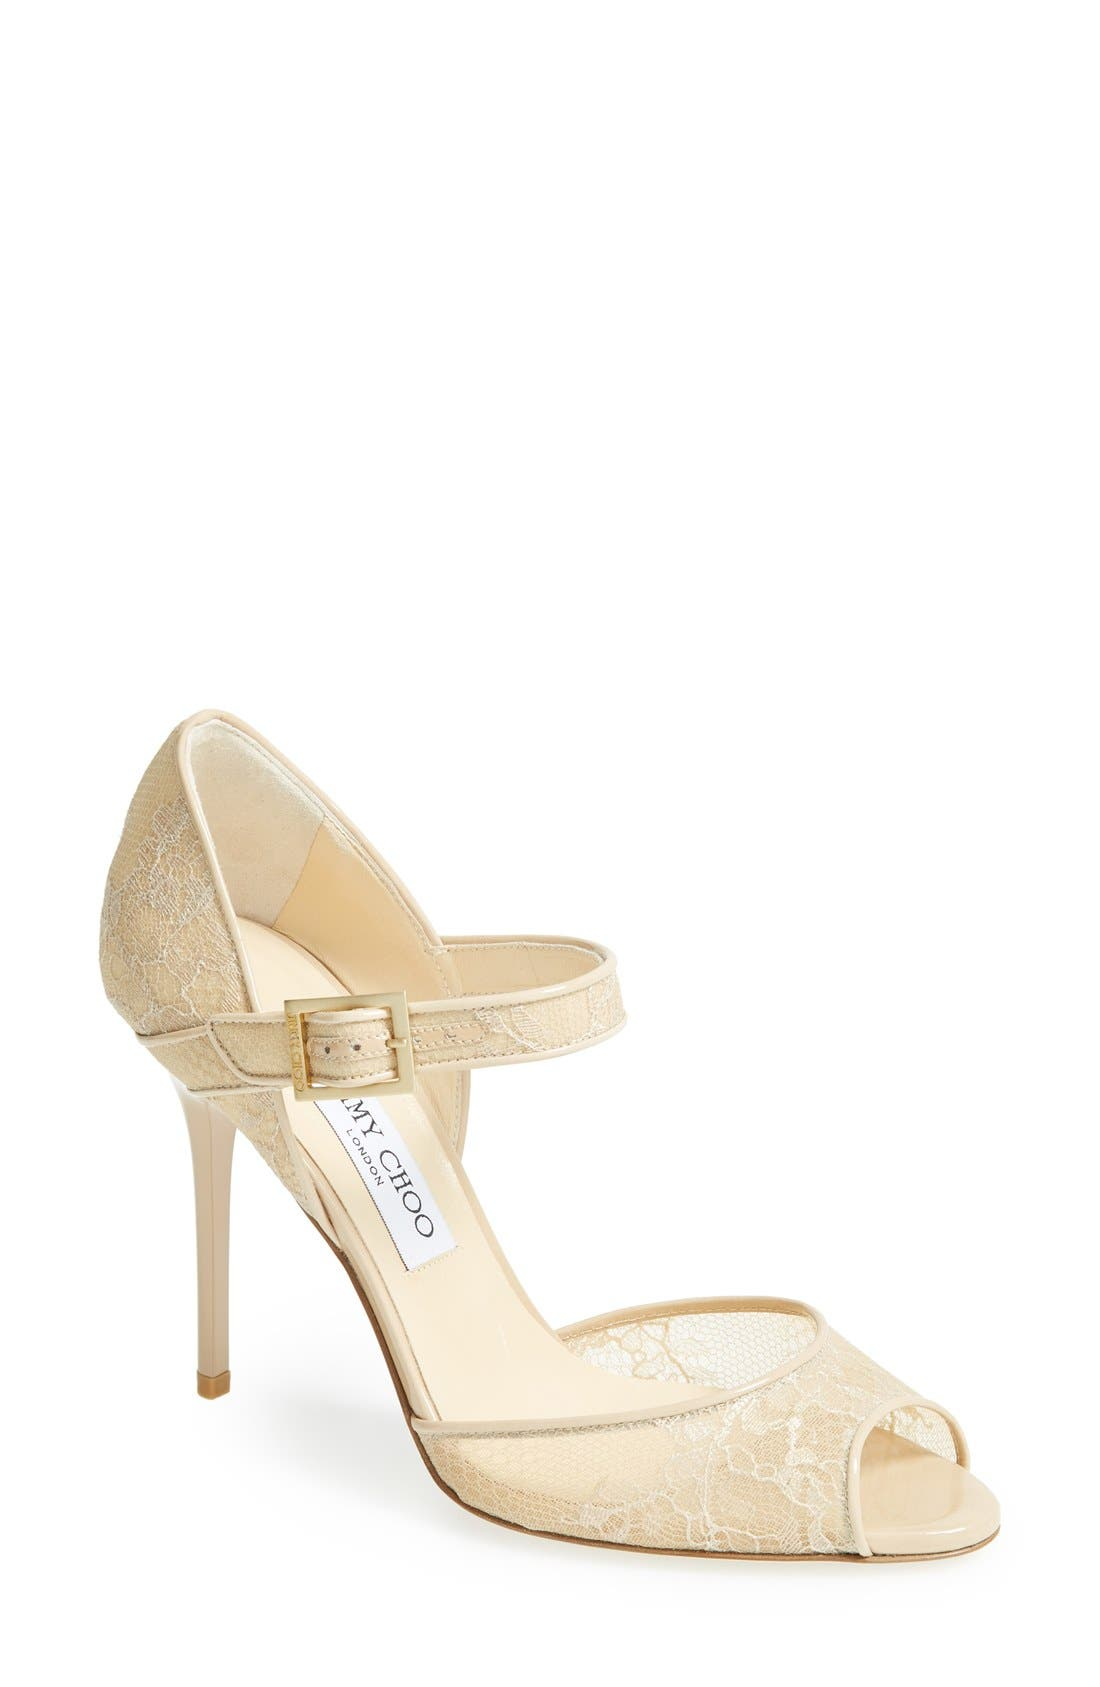 Main Image - Jimmy Choo 'Lace' Pump (Women)